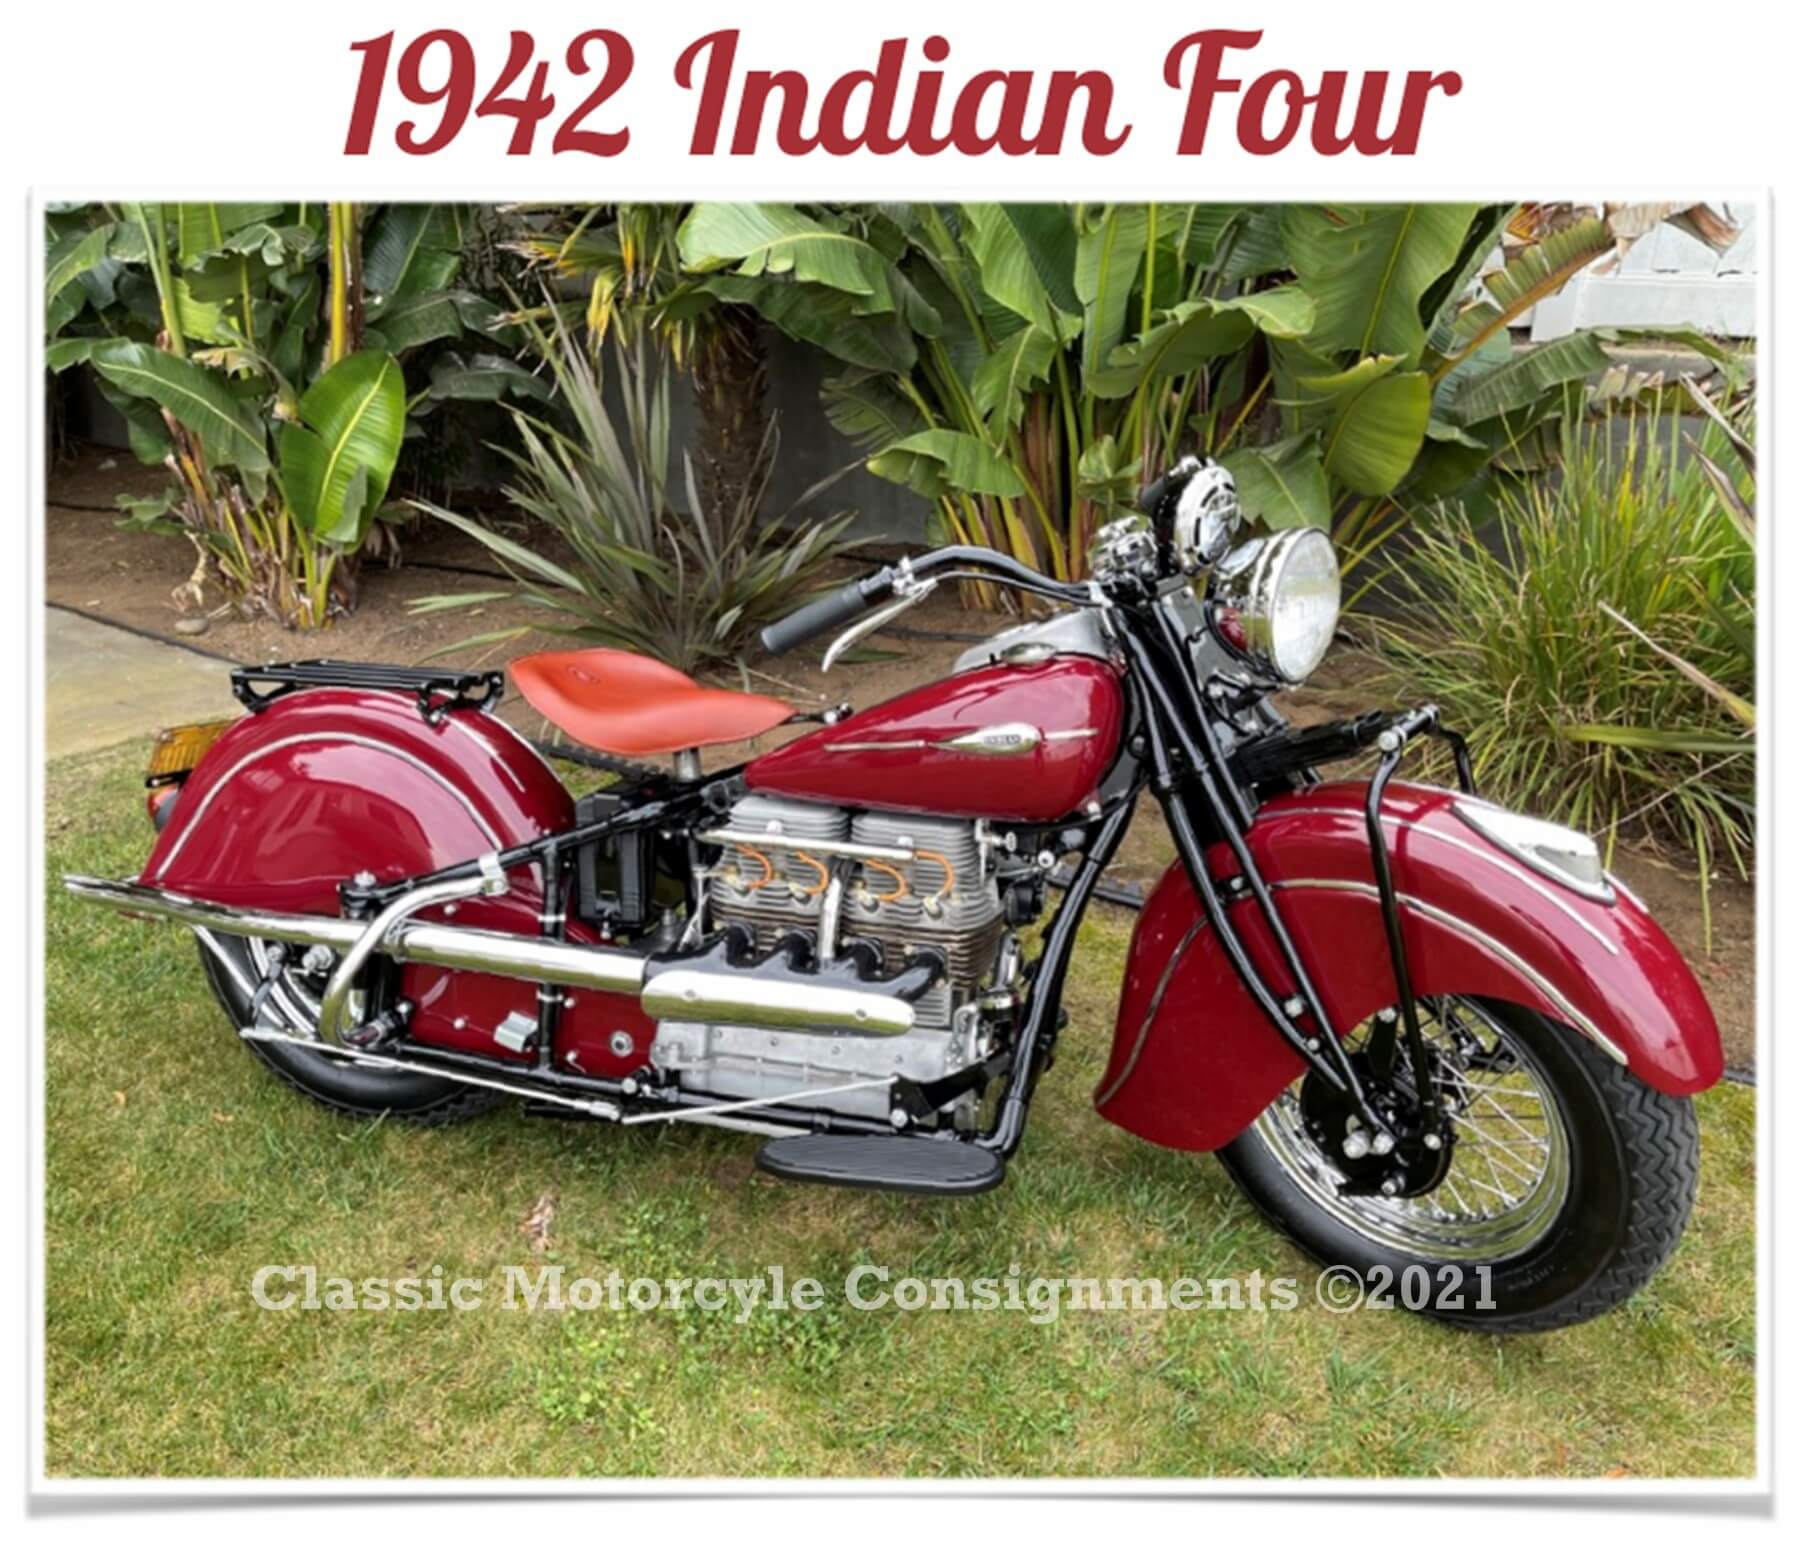 1942 Indian Four – Model 442